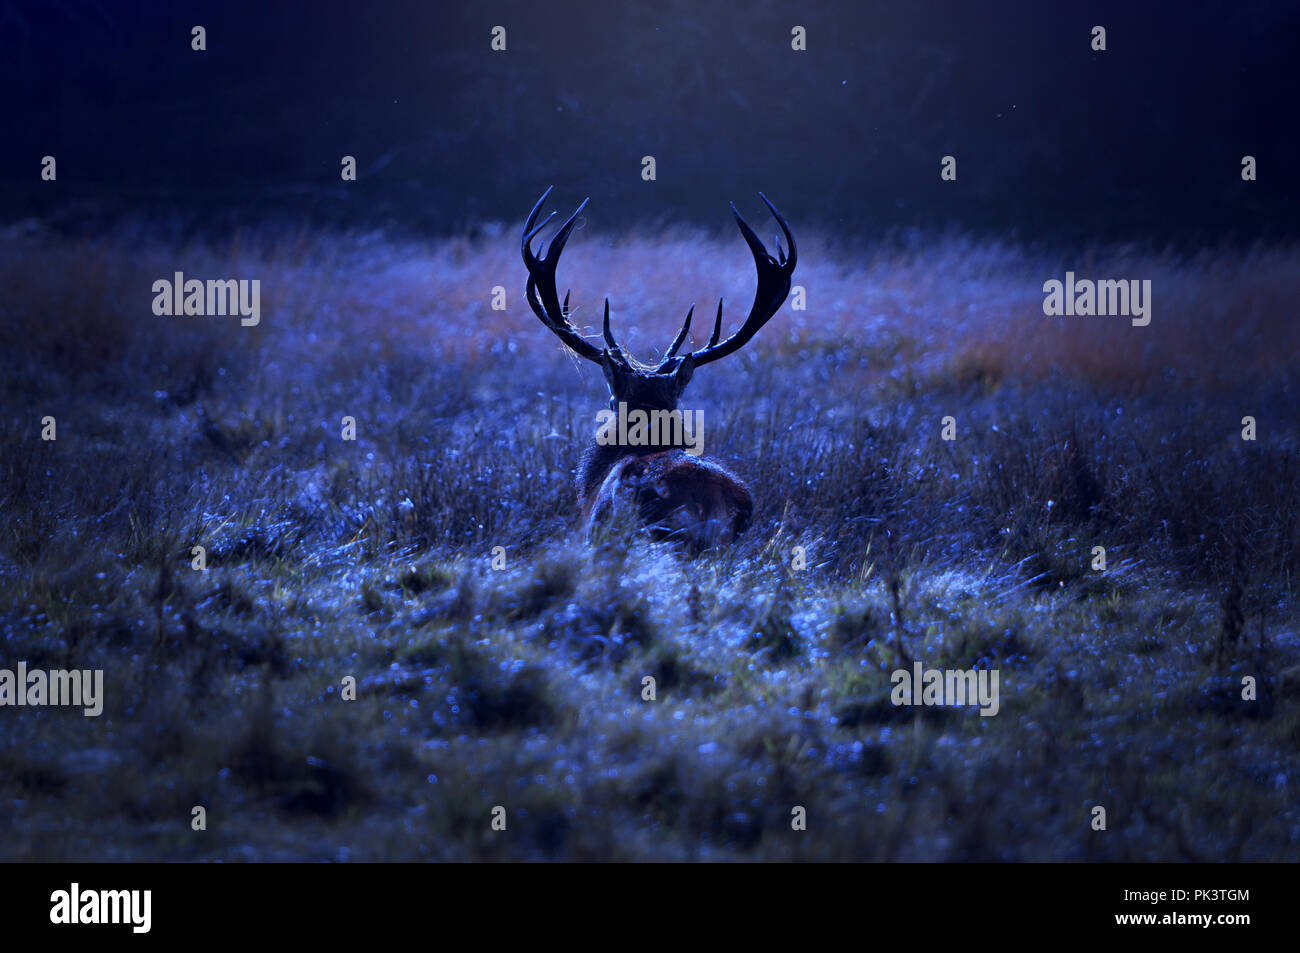 Lonely stag walking alone on field by the forest at night. - Stock Image